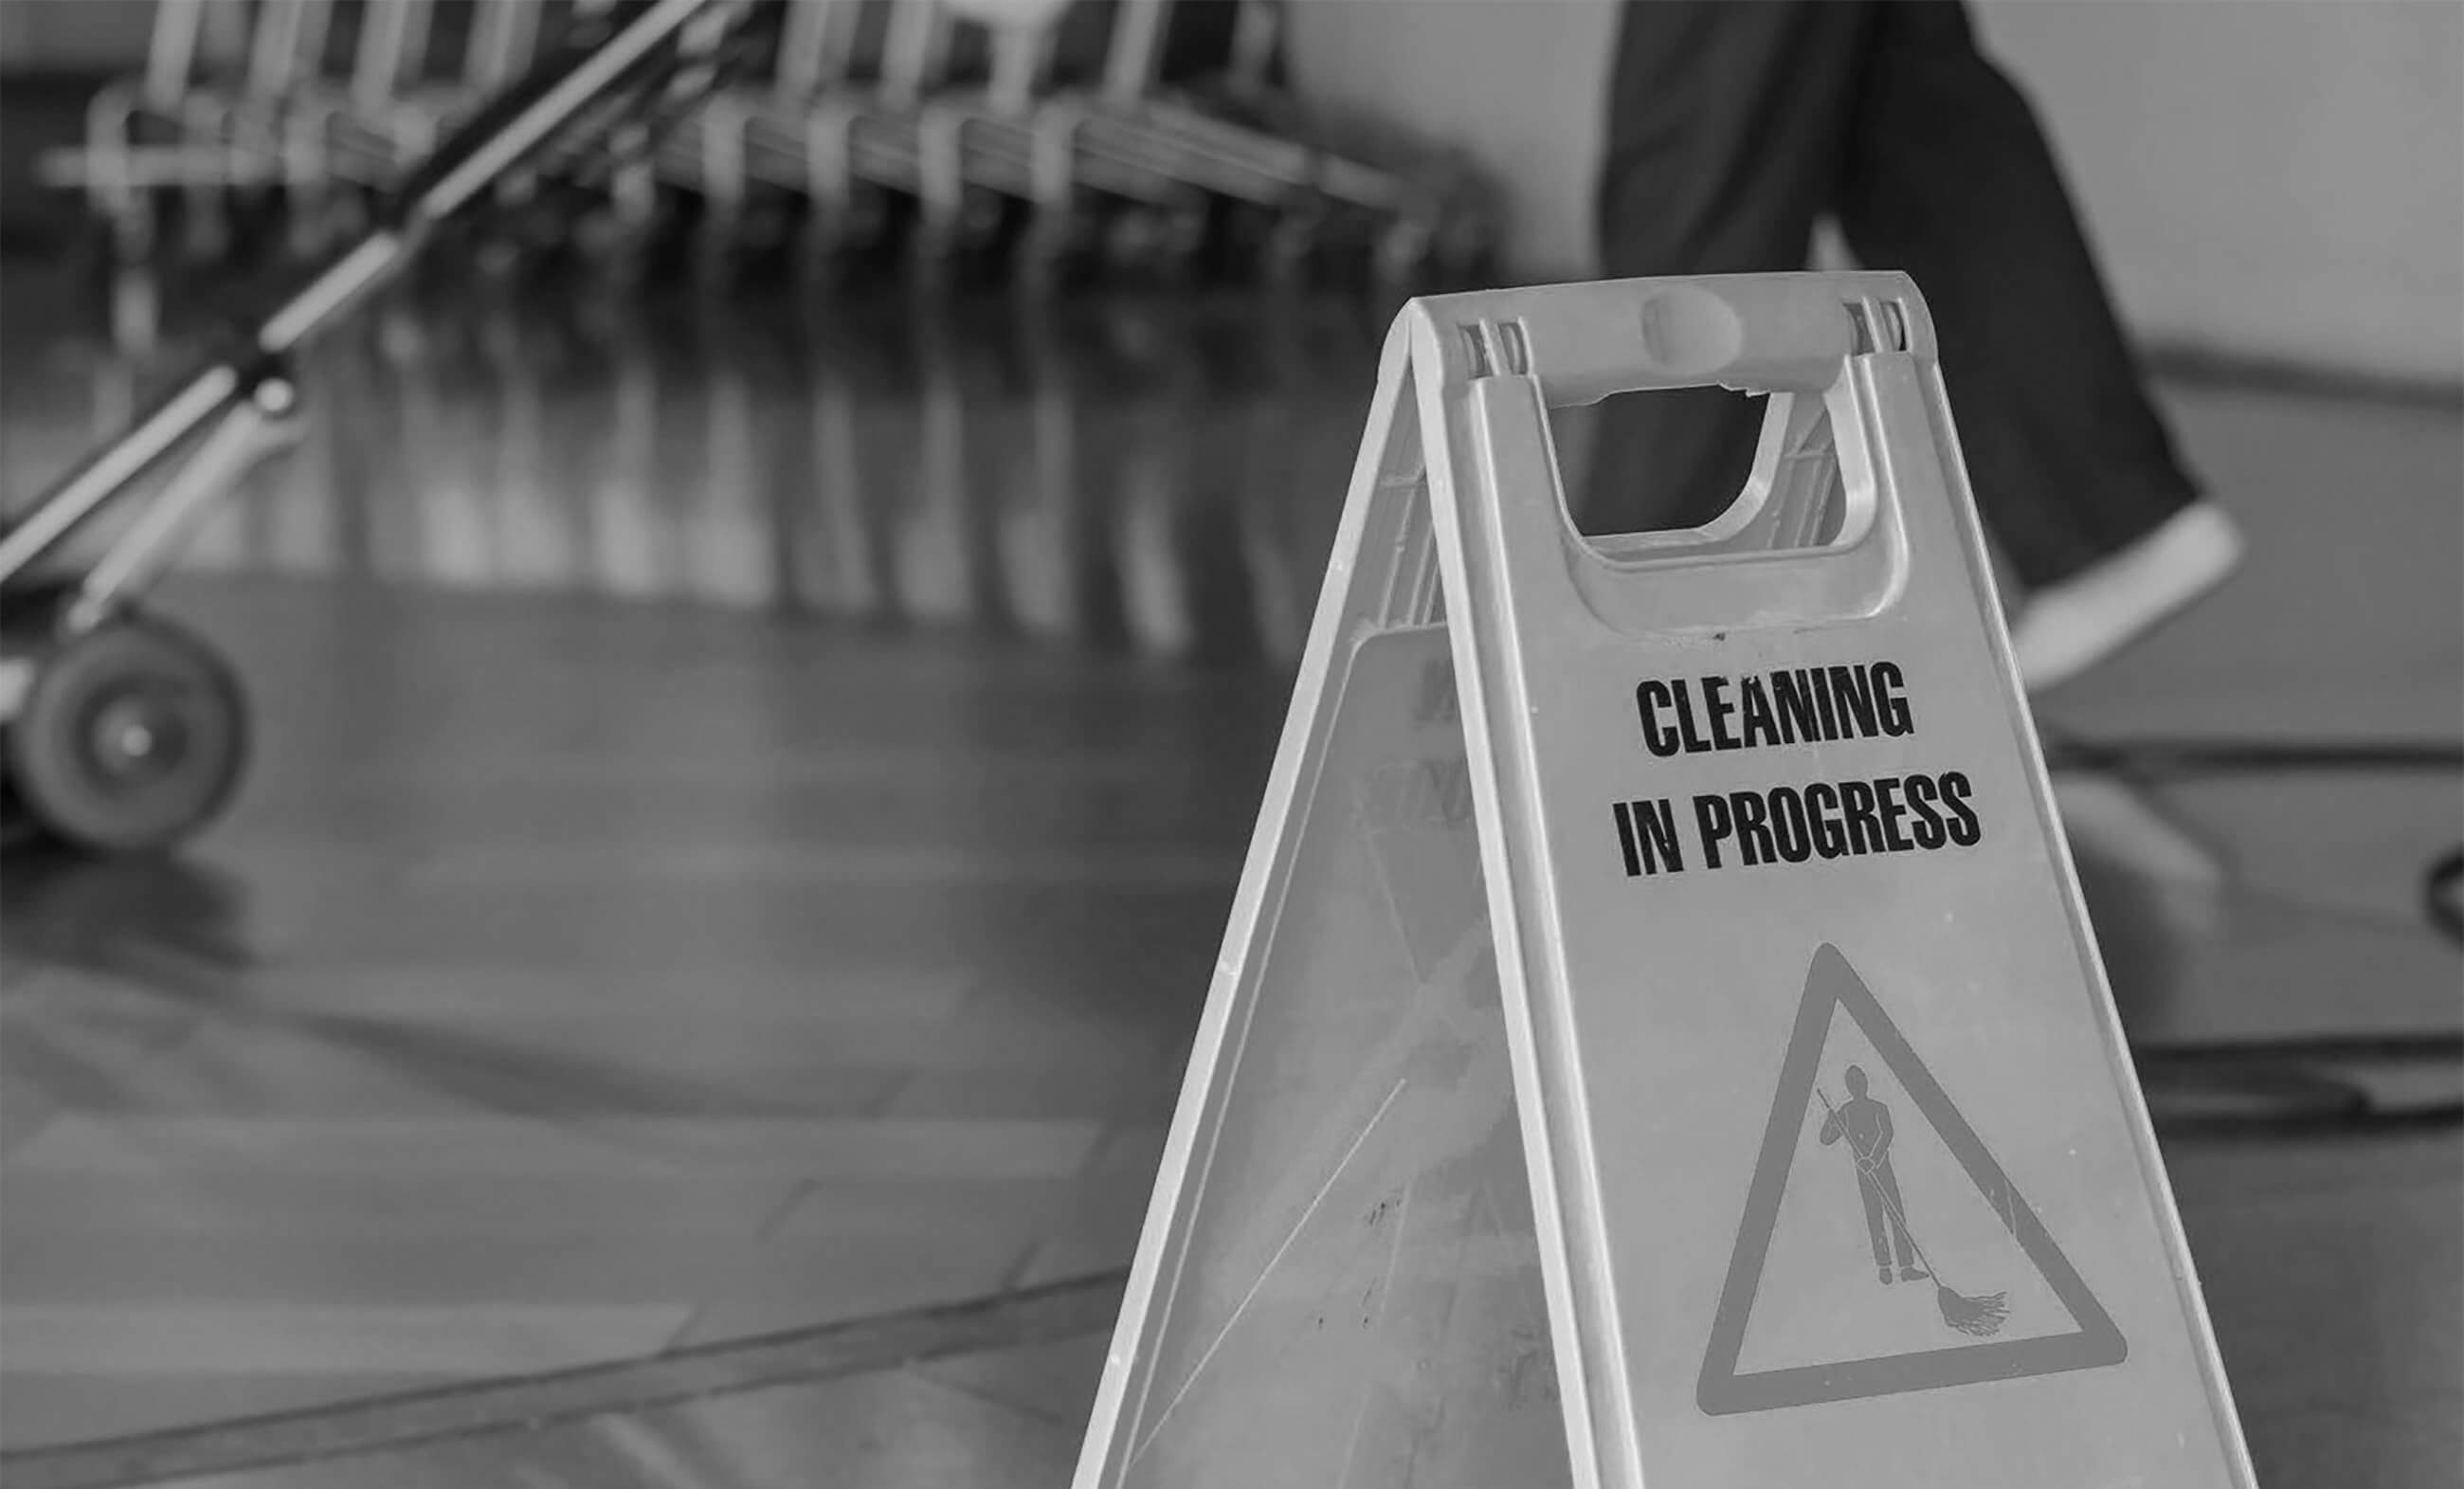 Specialised Cleaning & Hygiene Services